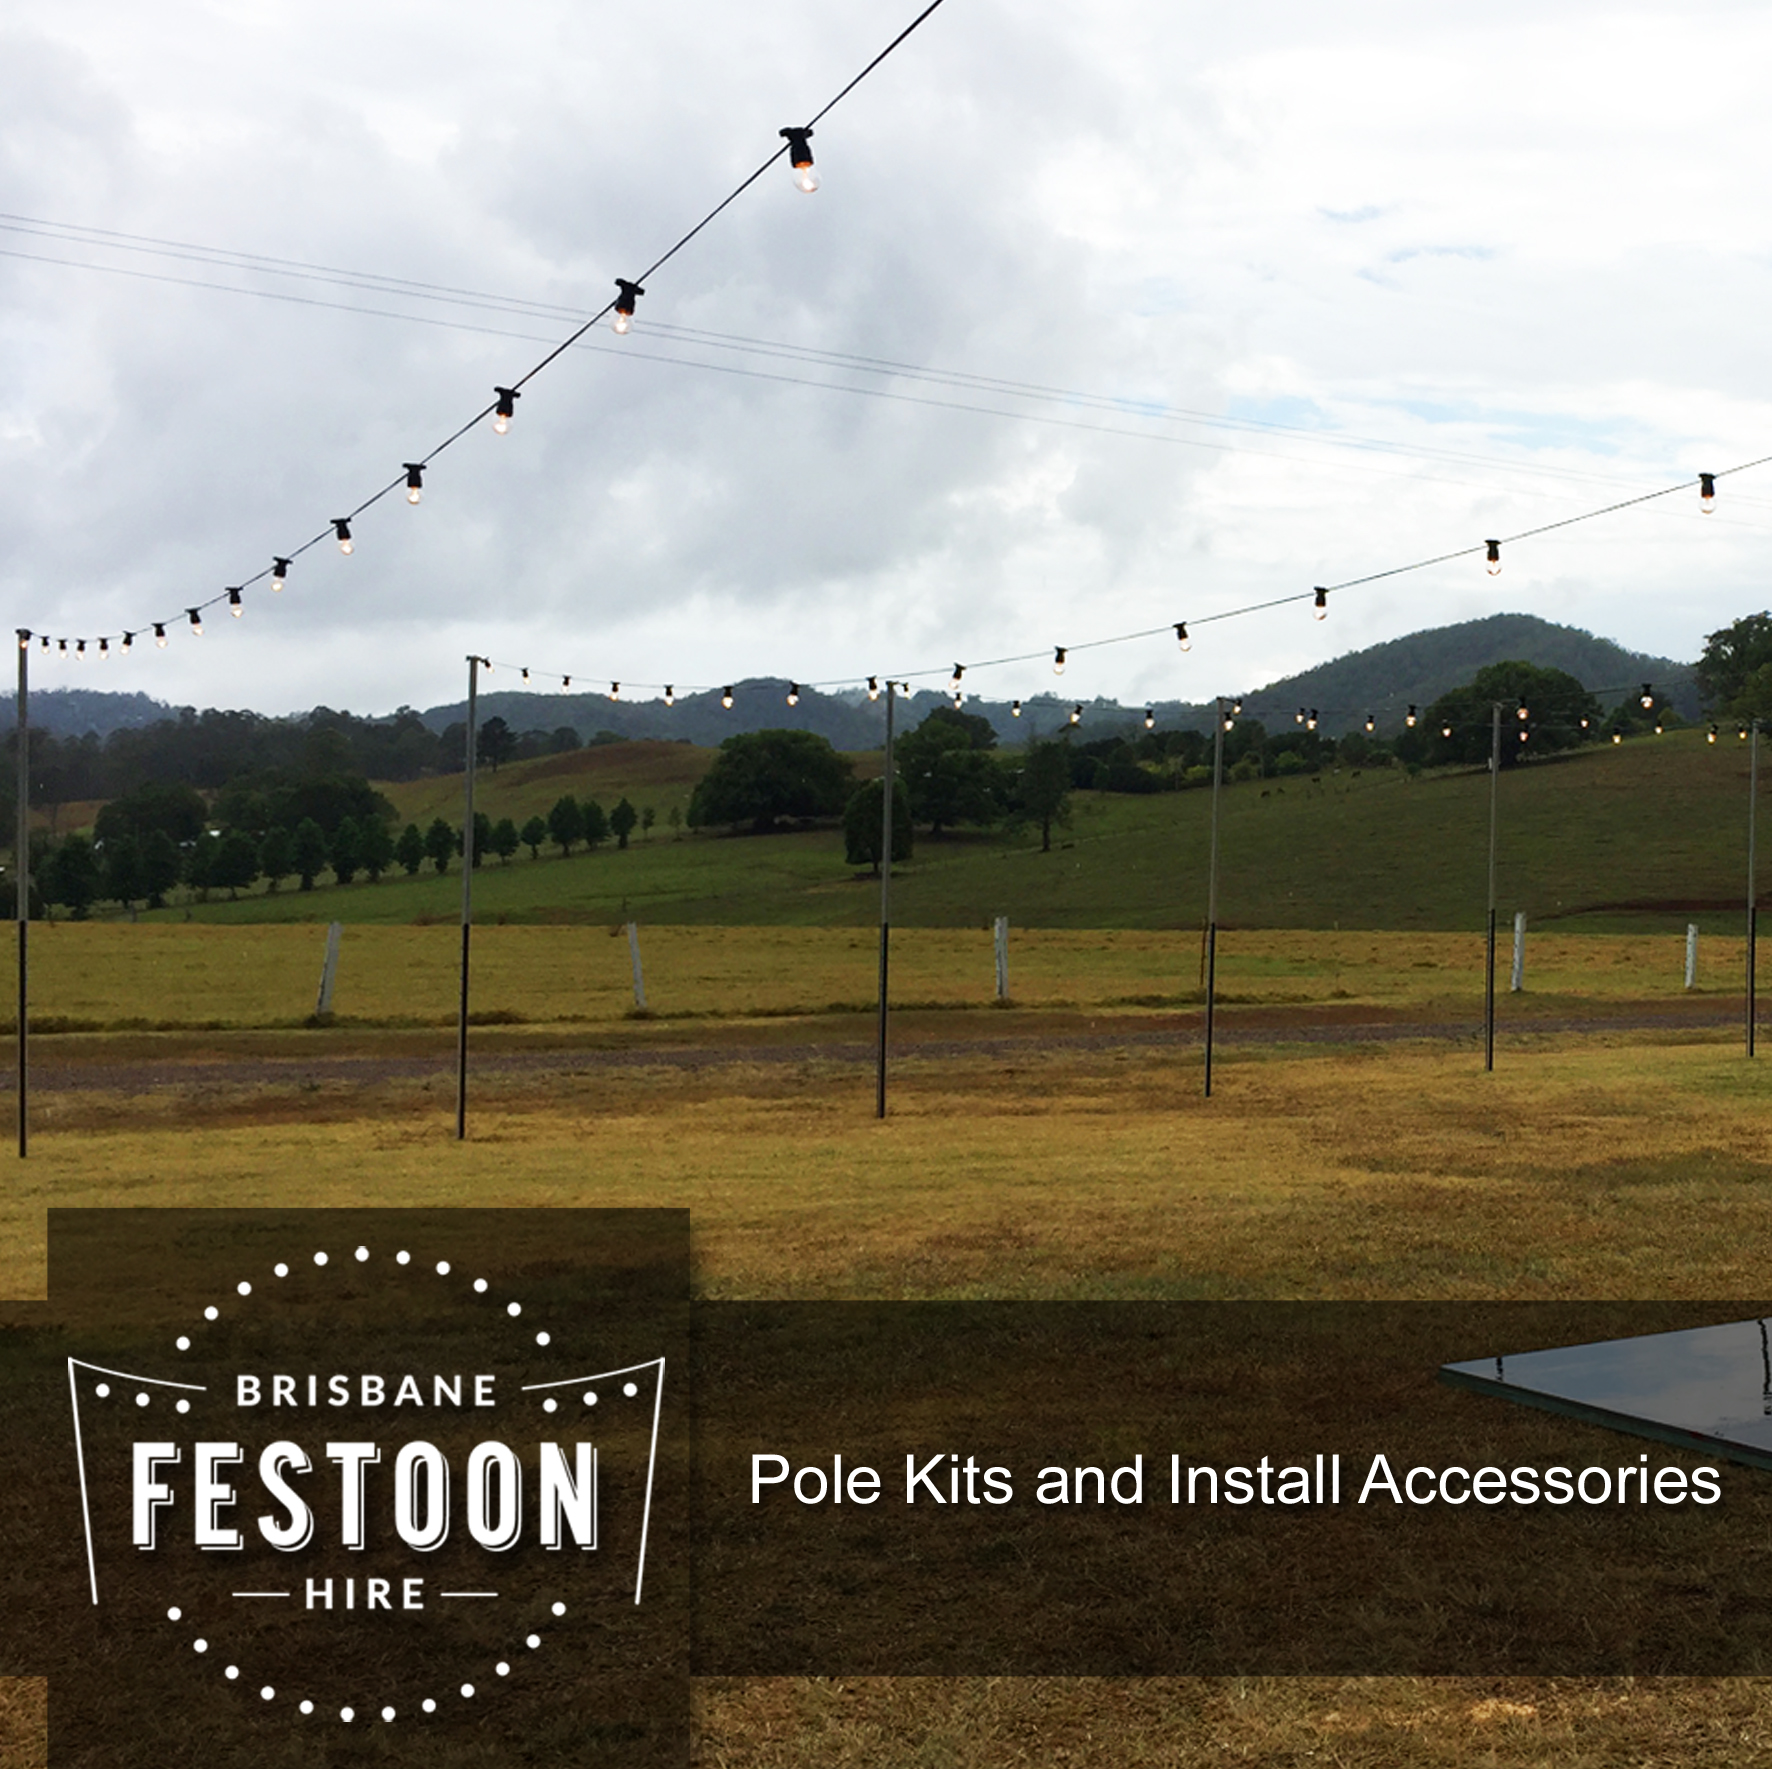 Brisbane Festoon Hire - Pole Kits and Install Accessories 1.jpg